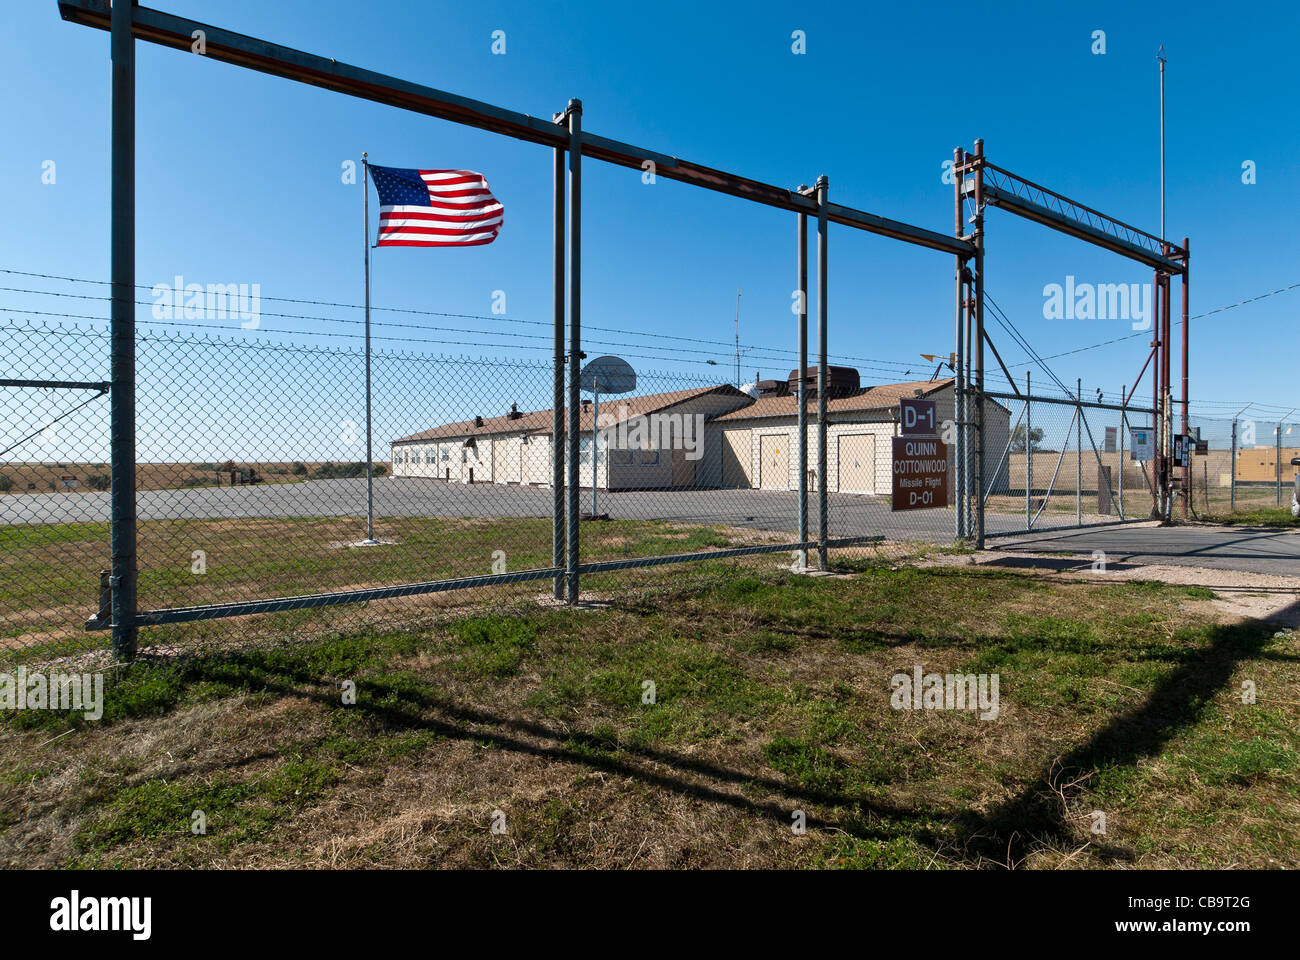 Minuteman Missile National Historical Site, South Dakota. - Stock Image